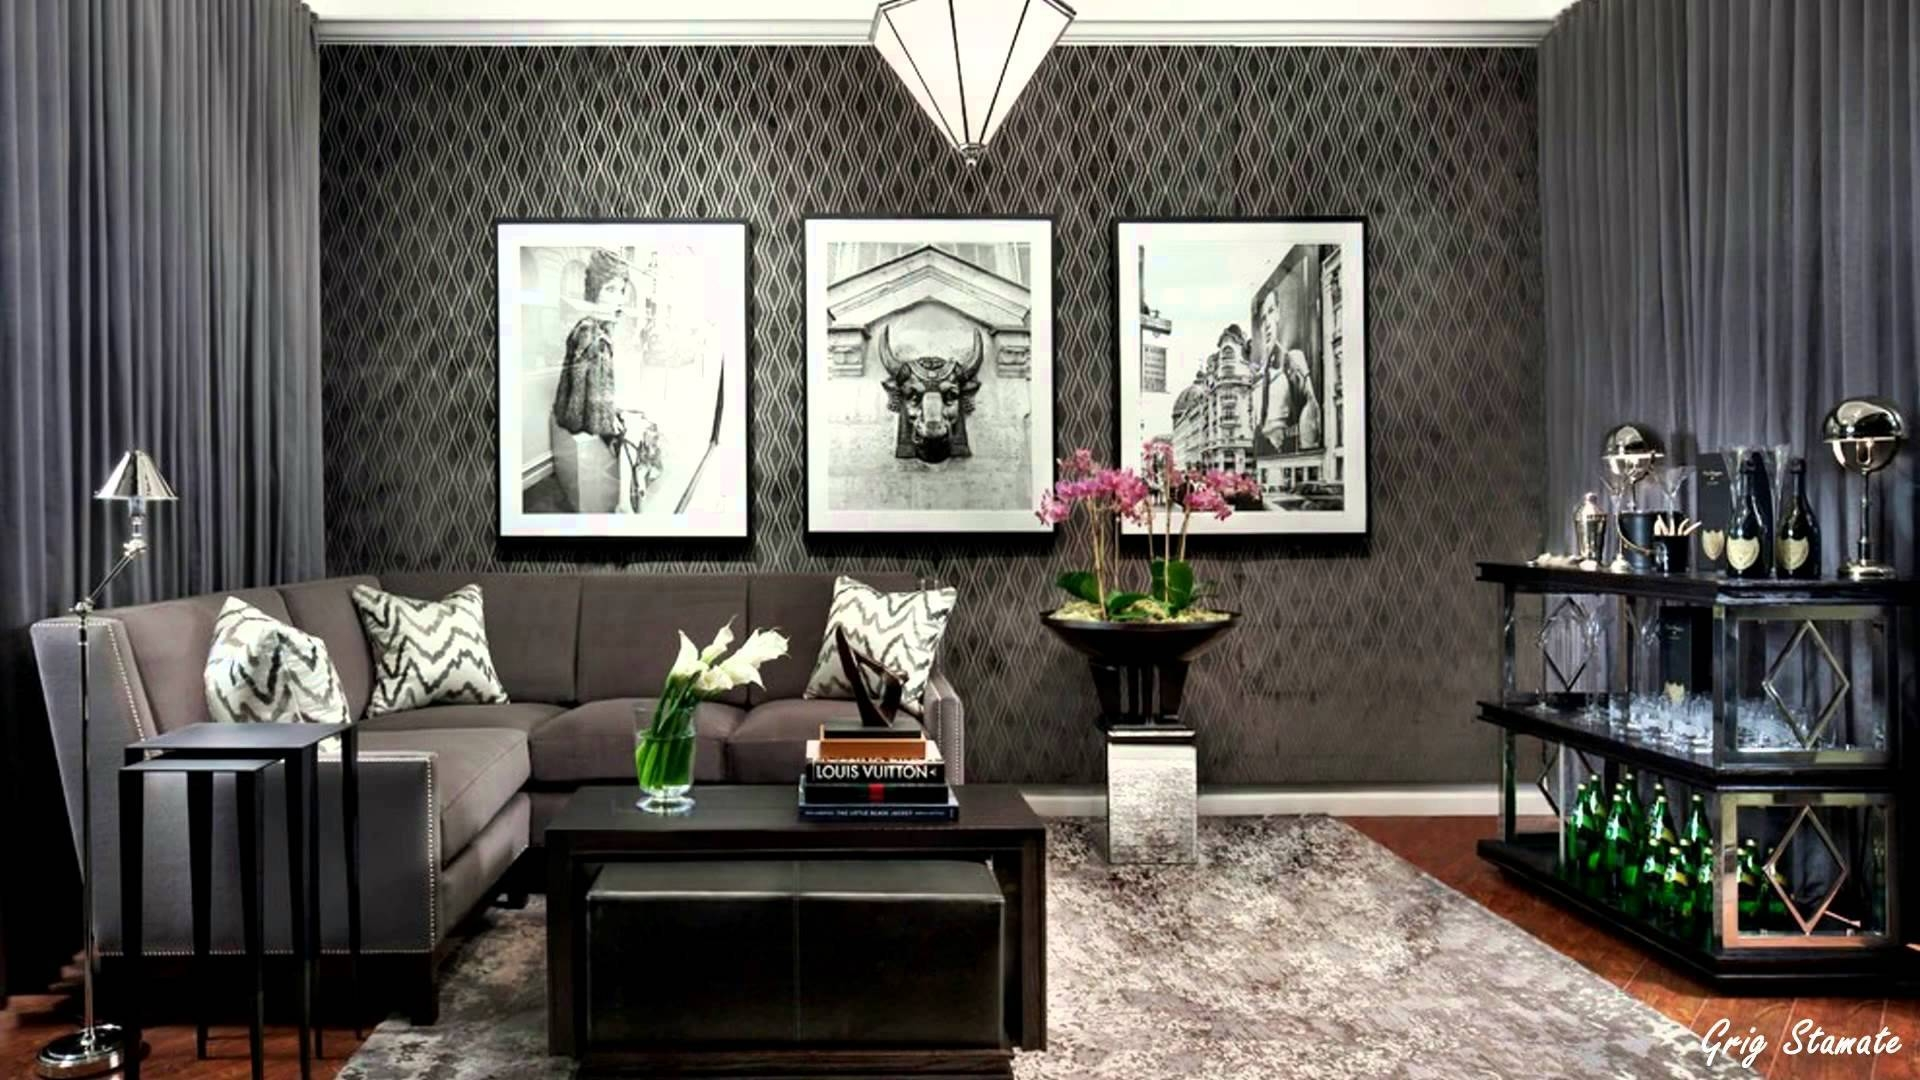 Black And White Wall Art – Stunning, Timeless And Trendy – Youtube With Regard To Most Recently Released Black And White Wall Art (View 10 of 16)